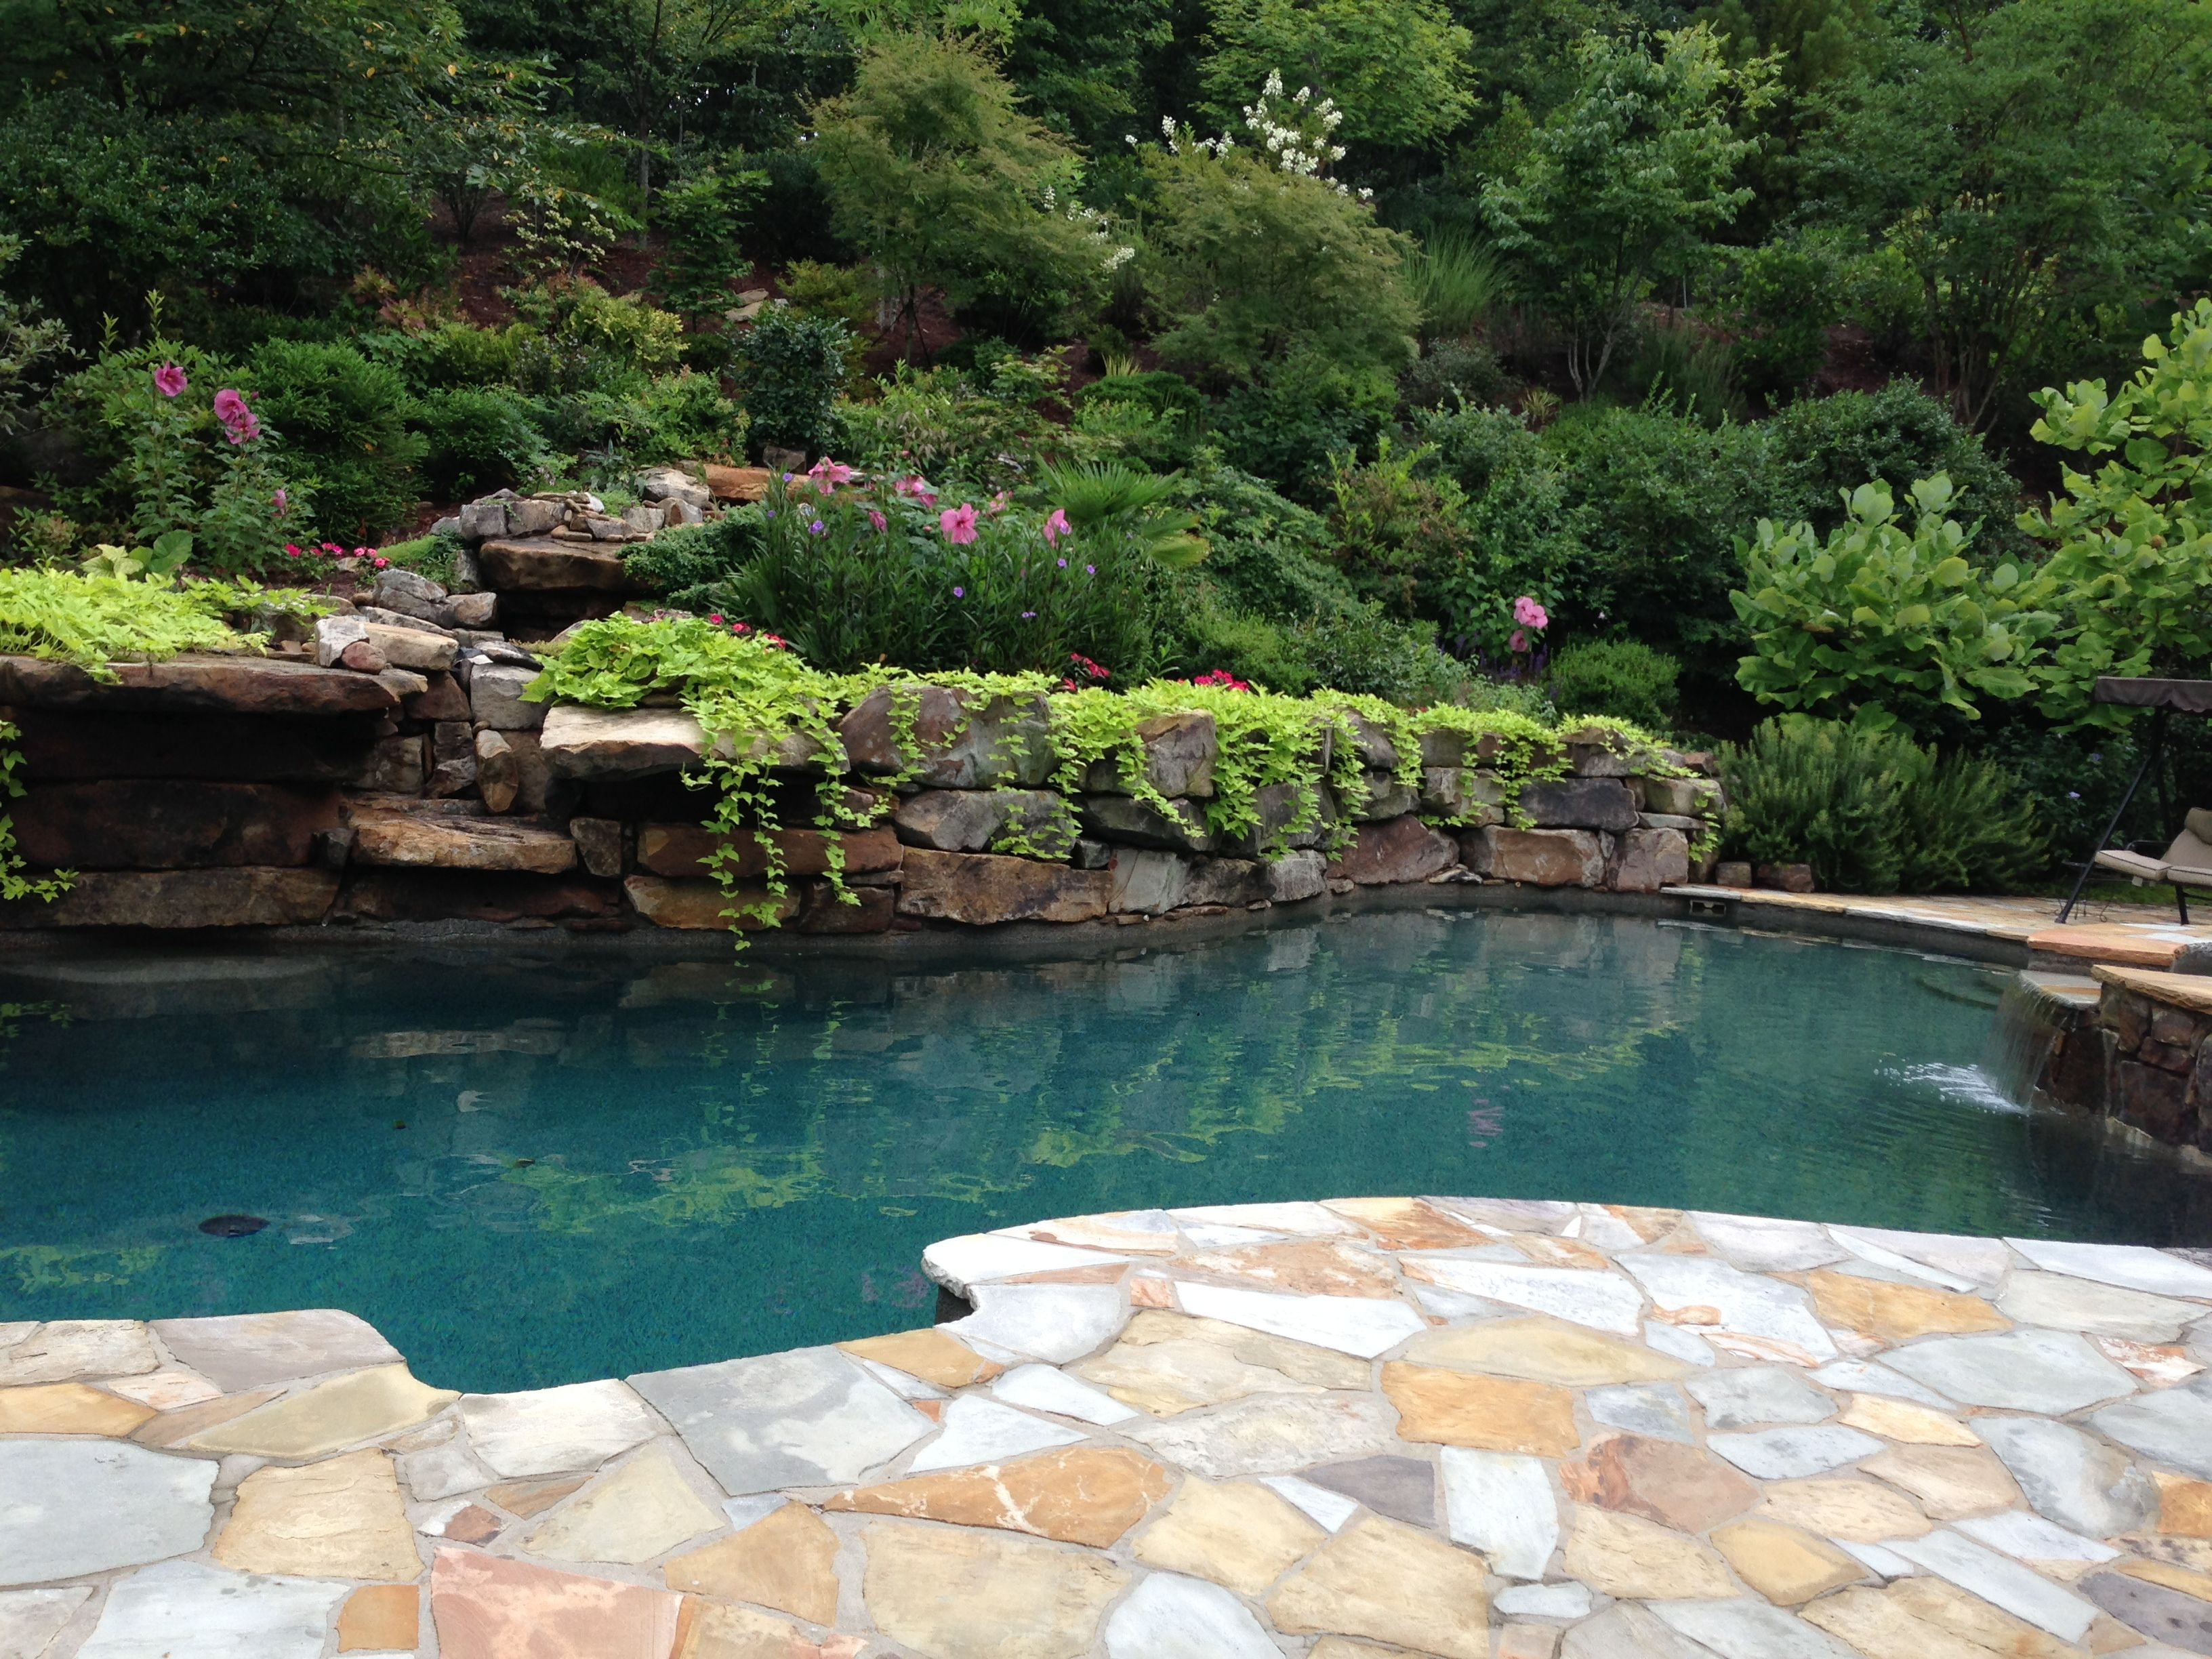 Superior Fancy Pool! Raised Hot Tub And A Cascading Waterfall.